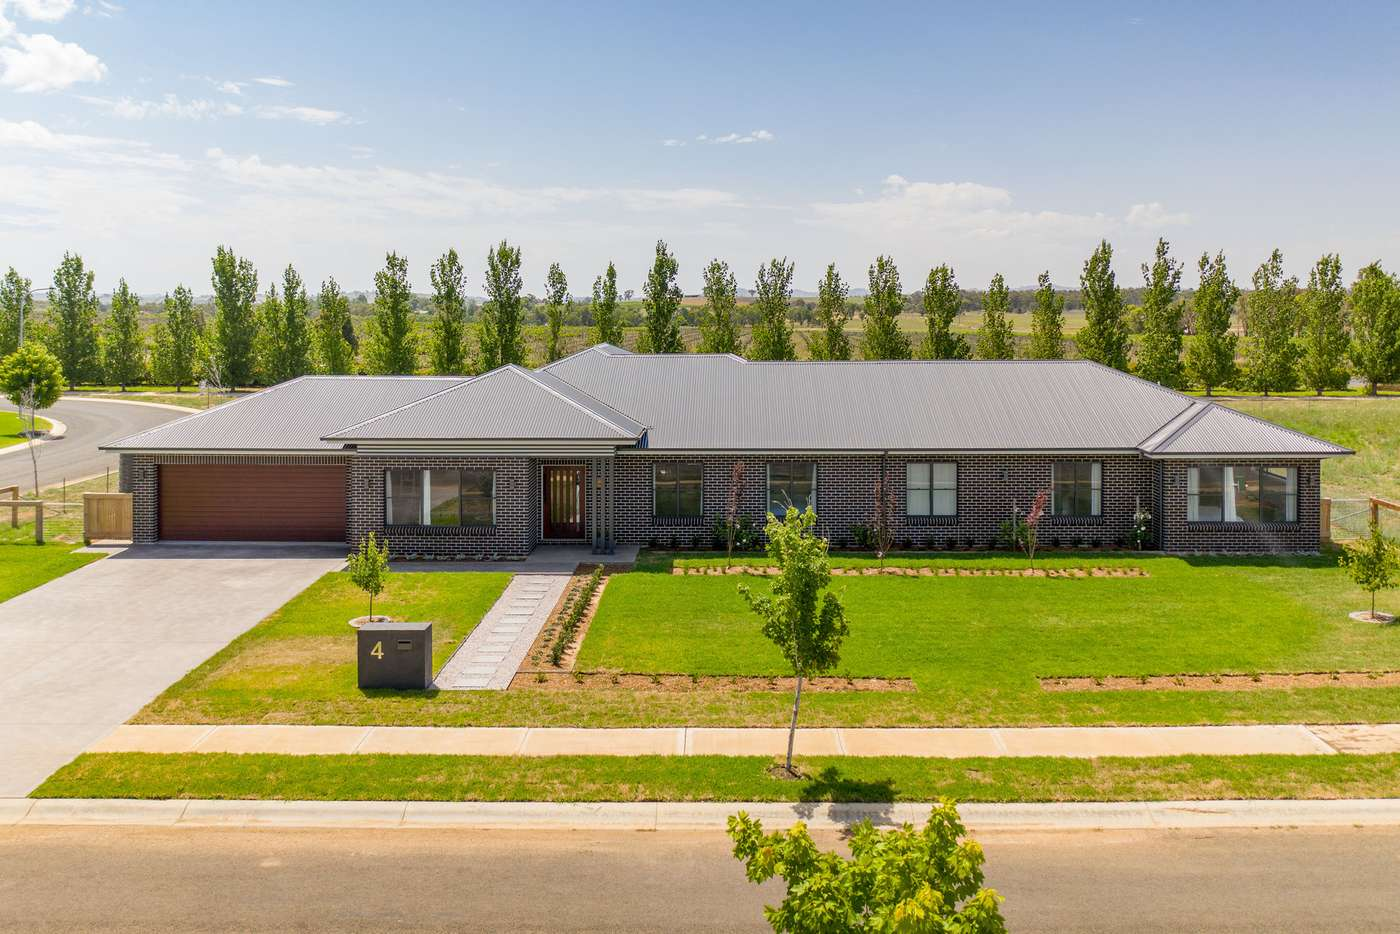 Main view of Homely house listing, 4 Butler Circle, Mudgee NSW 2850